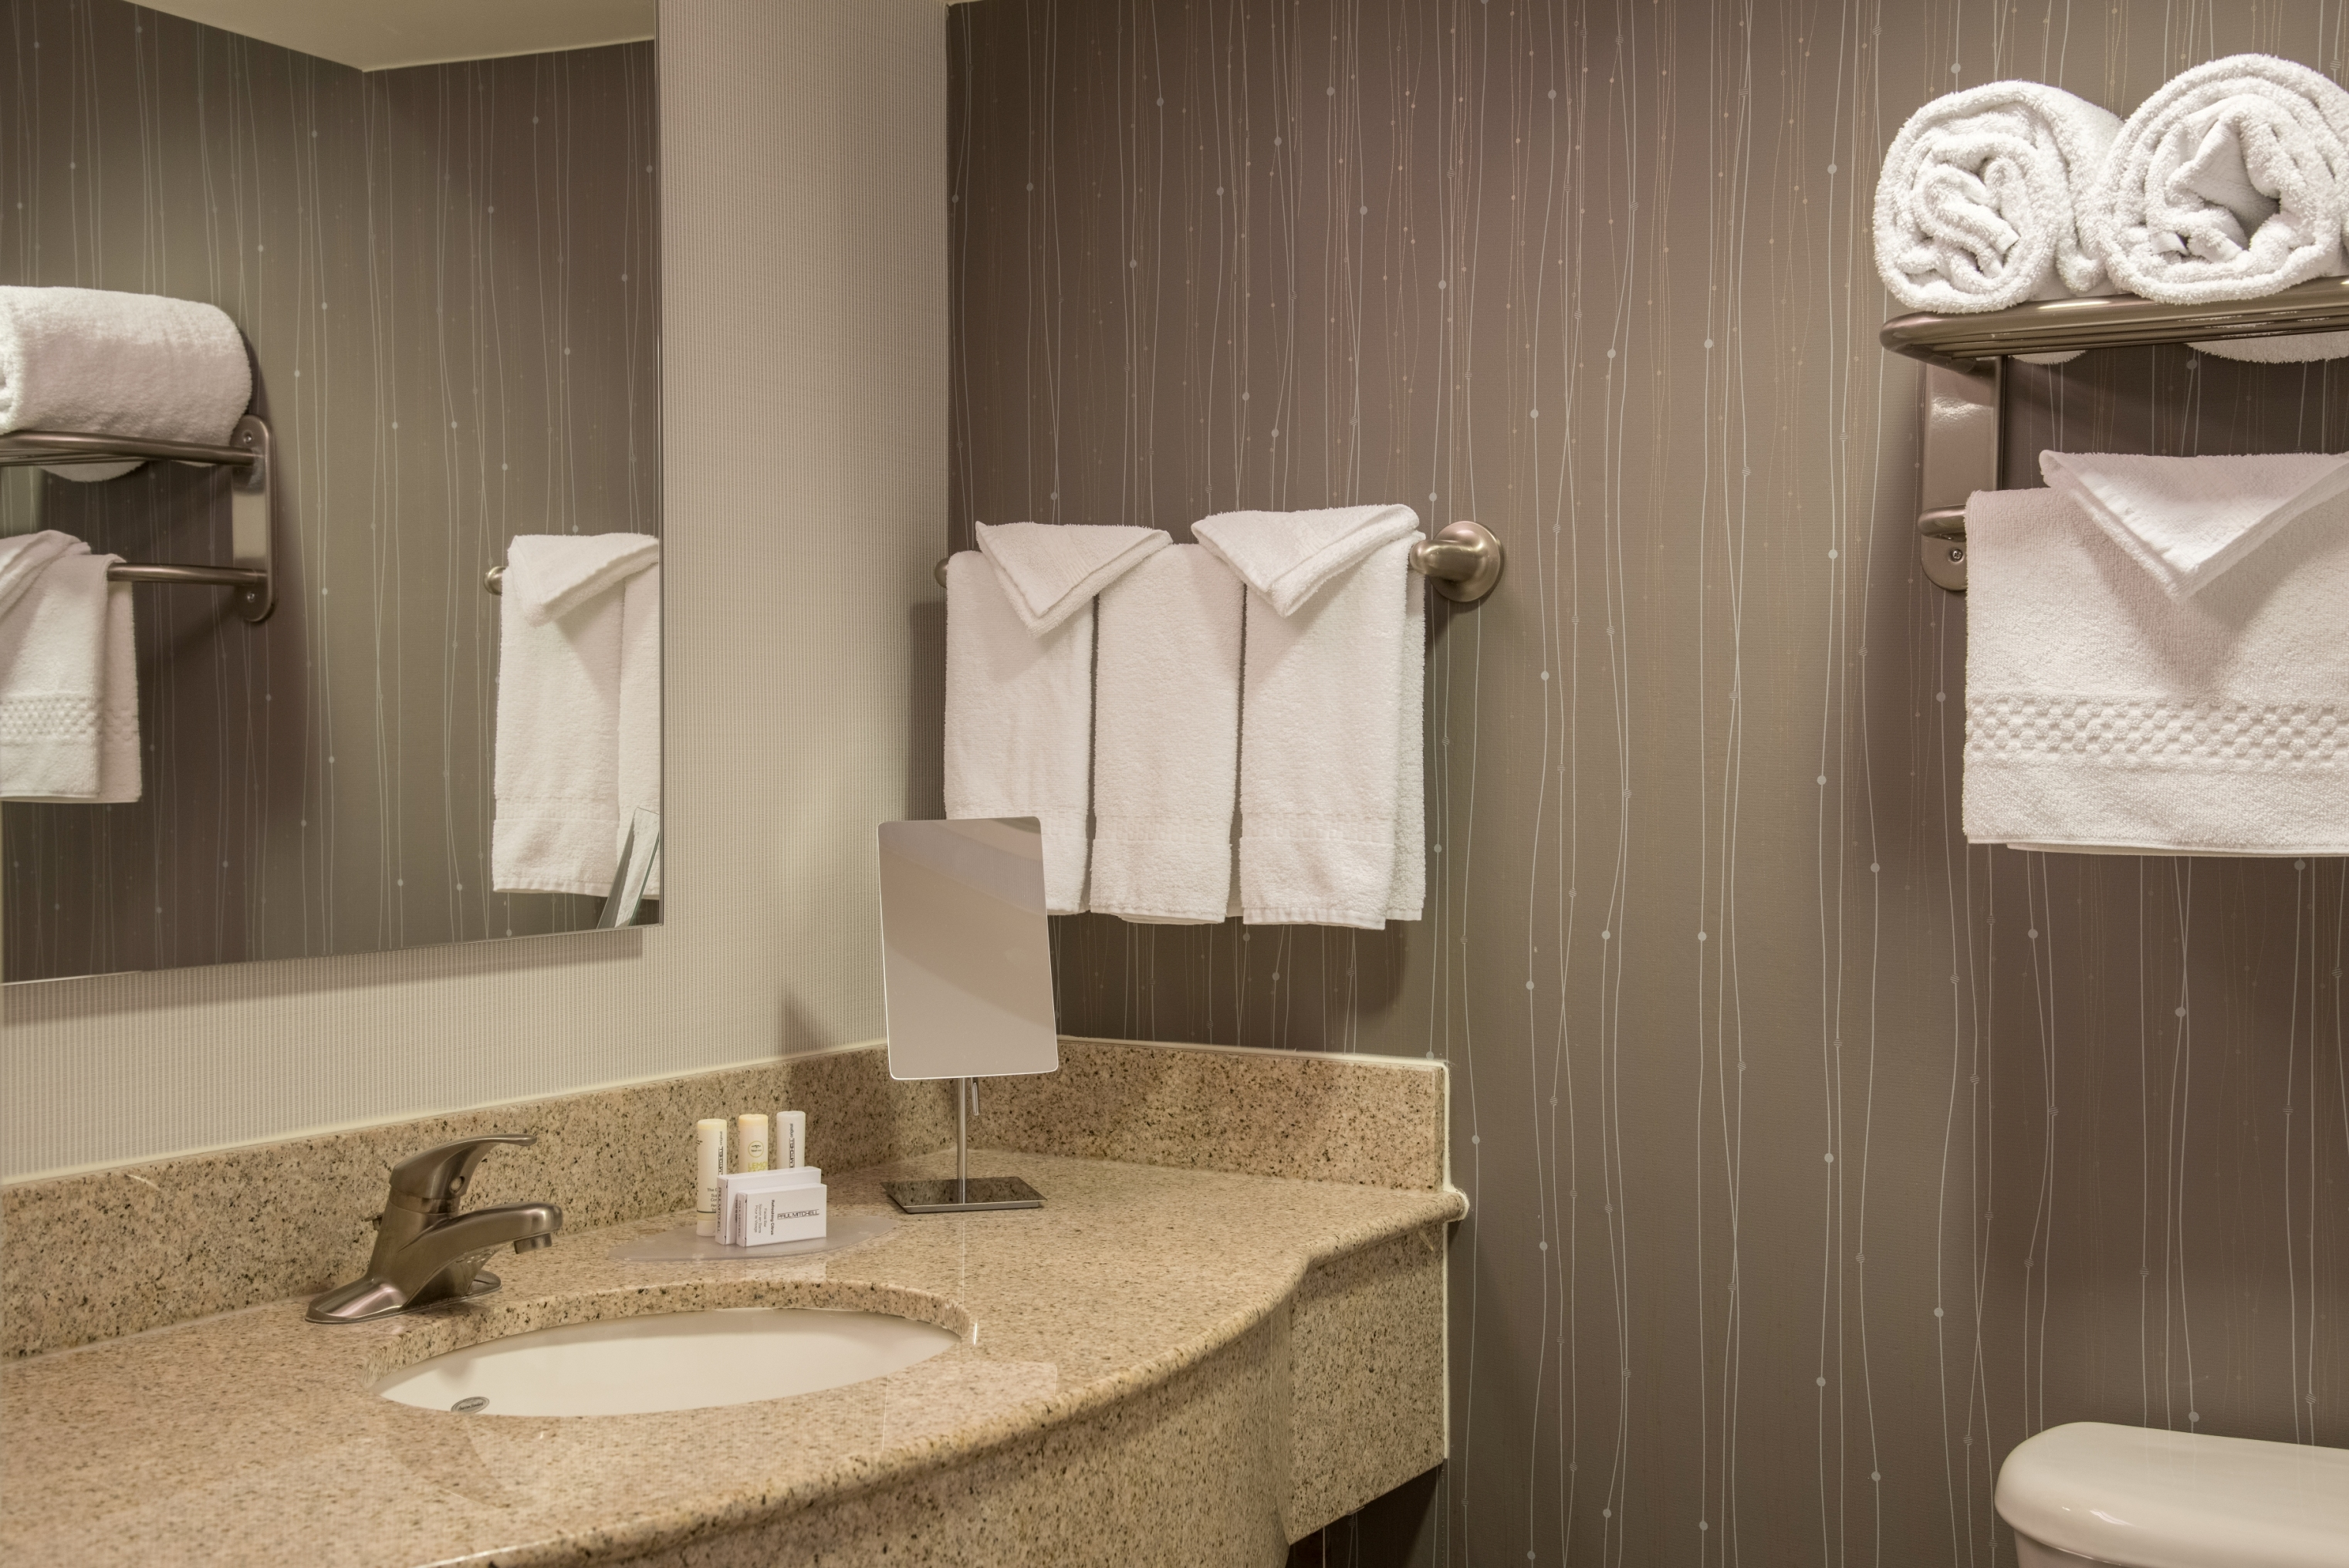 Courtyard by Marriott Chapel Hill image 3